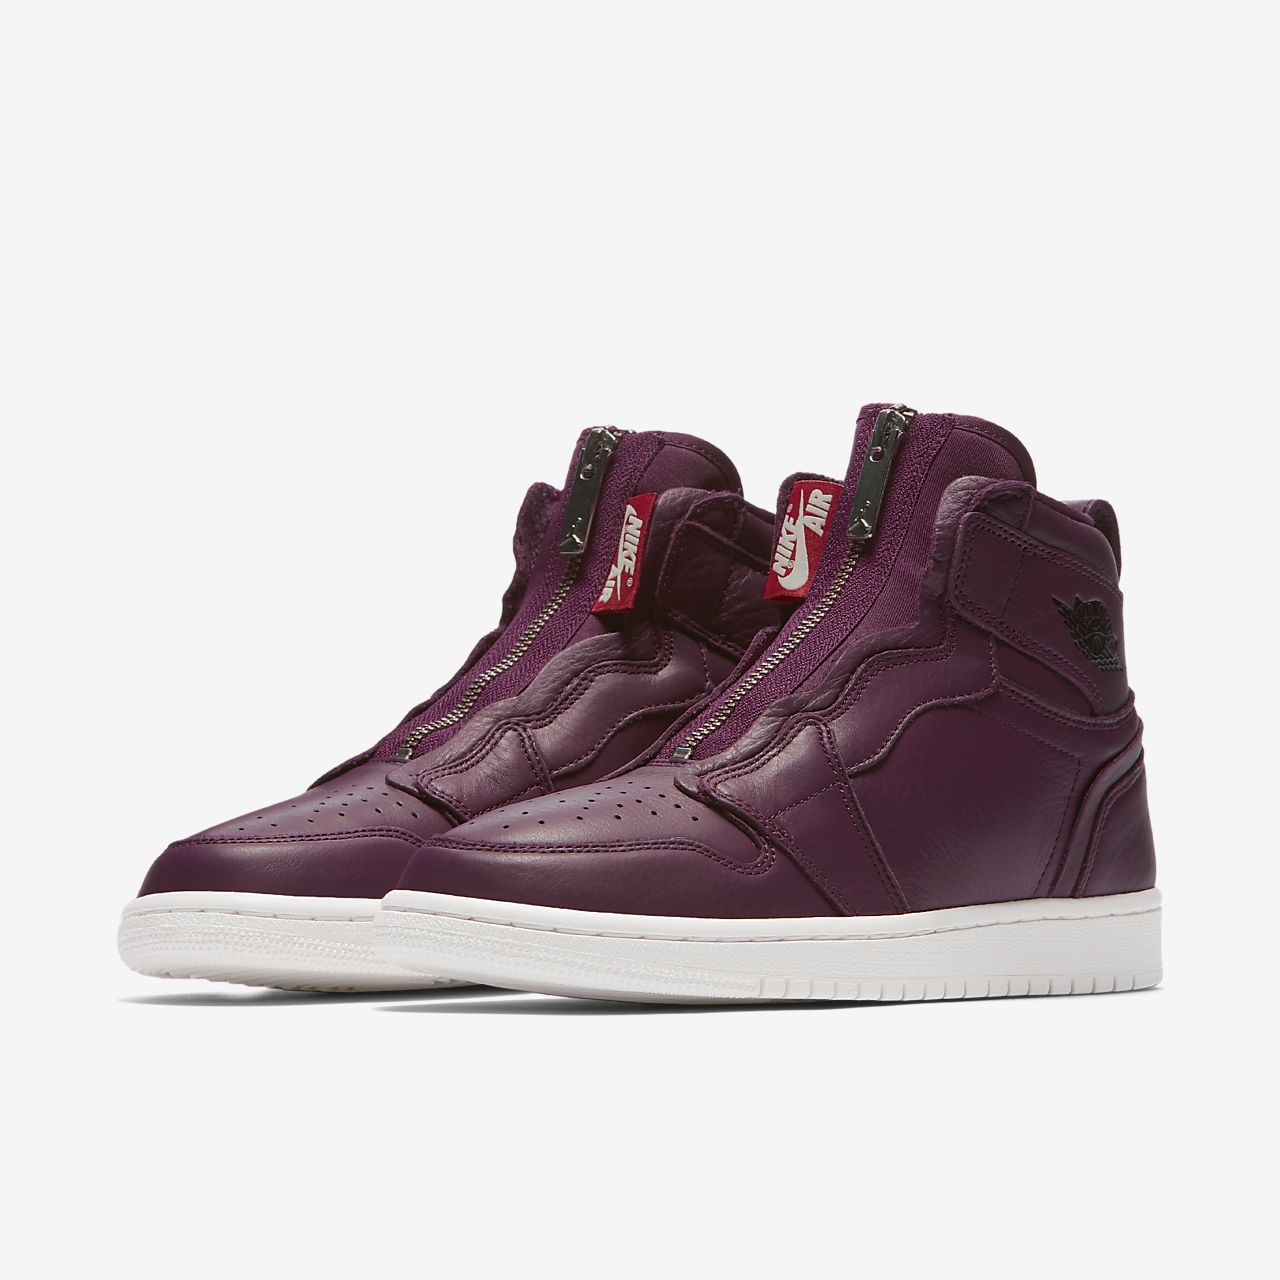 9d265b7c9319c3 Air Jordan 1 High Zip Premium Women s Shoe. Nike.com CA